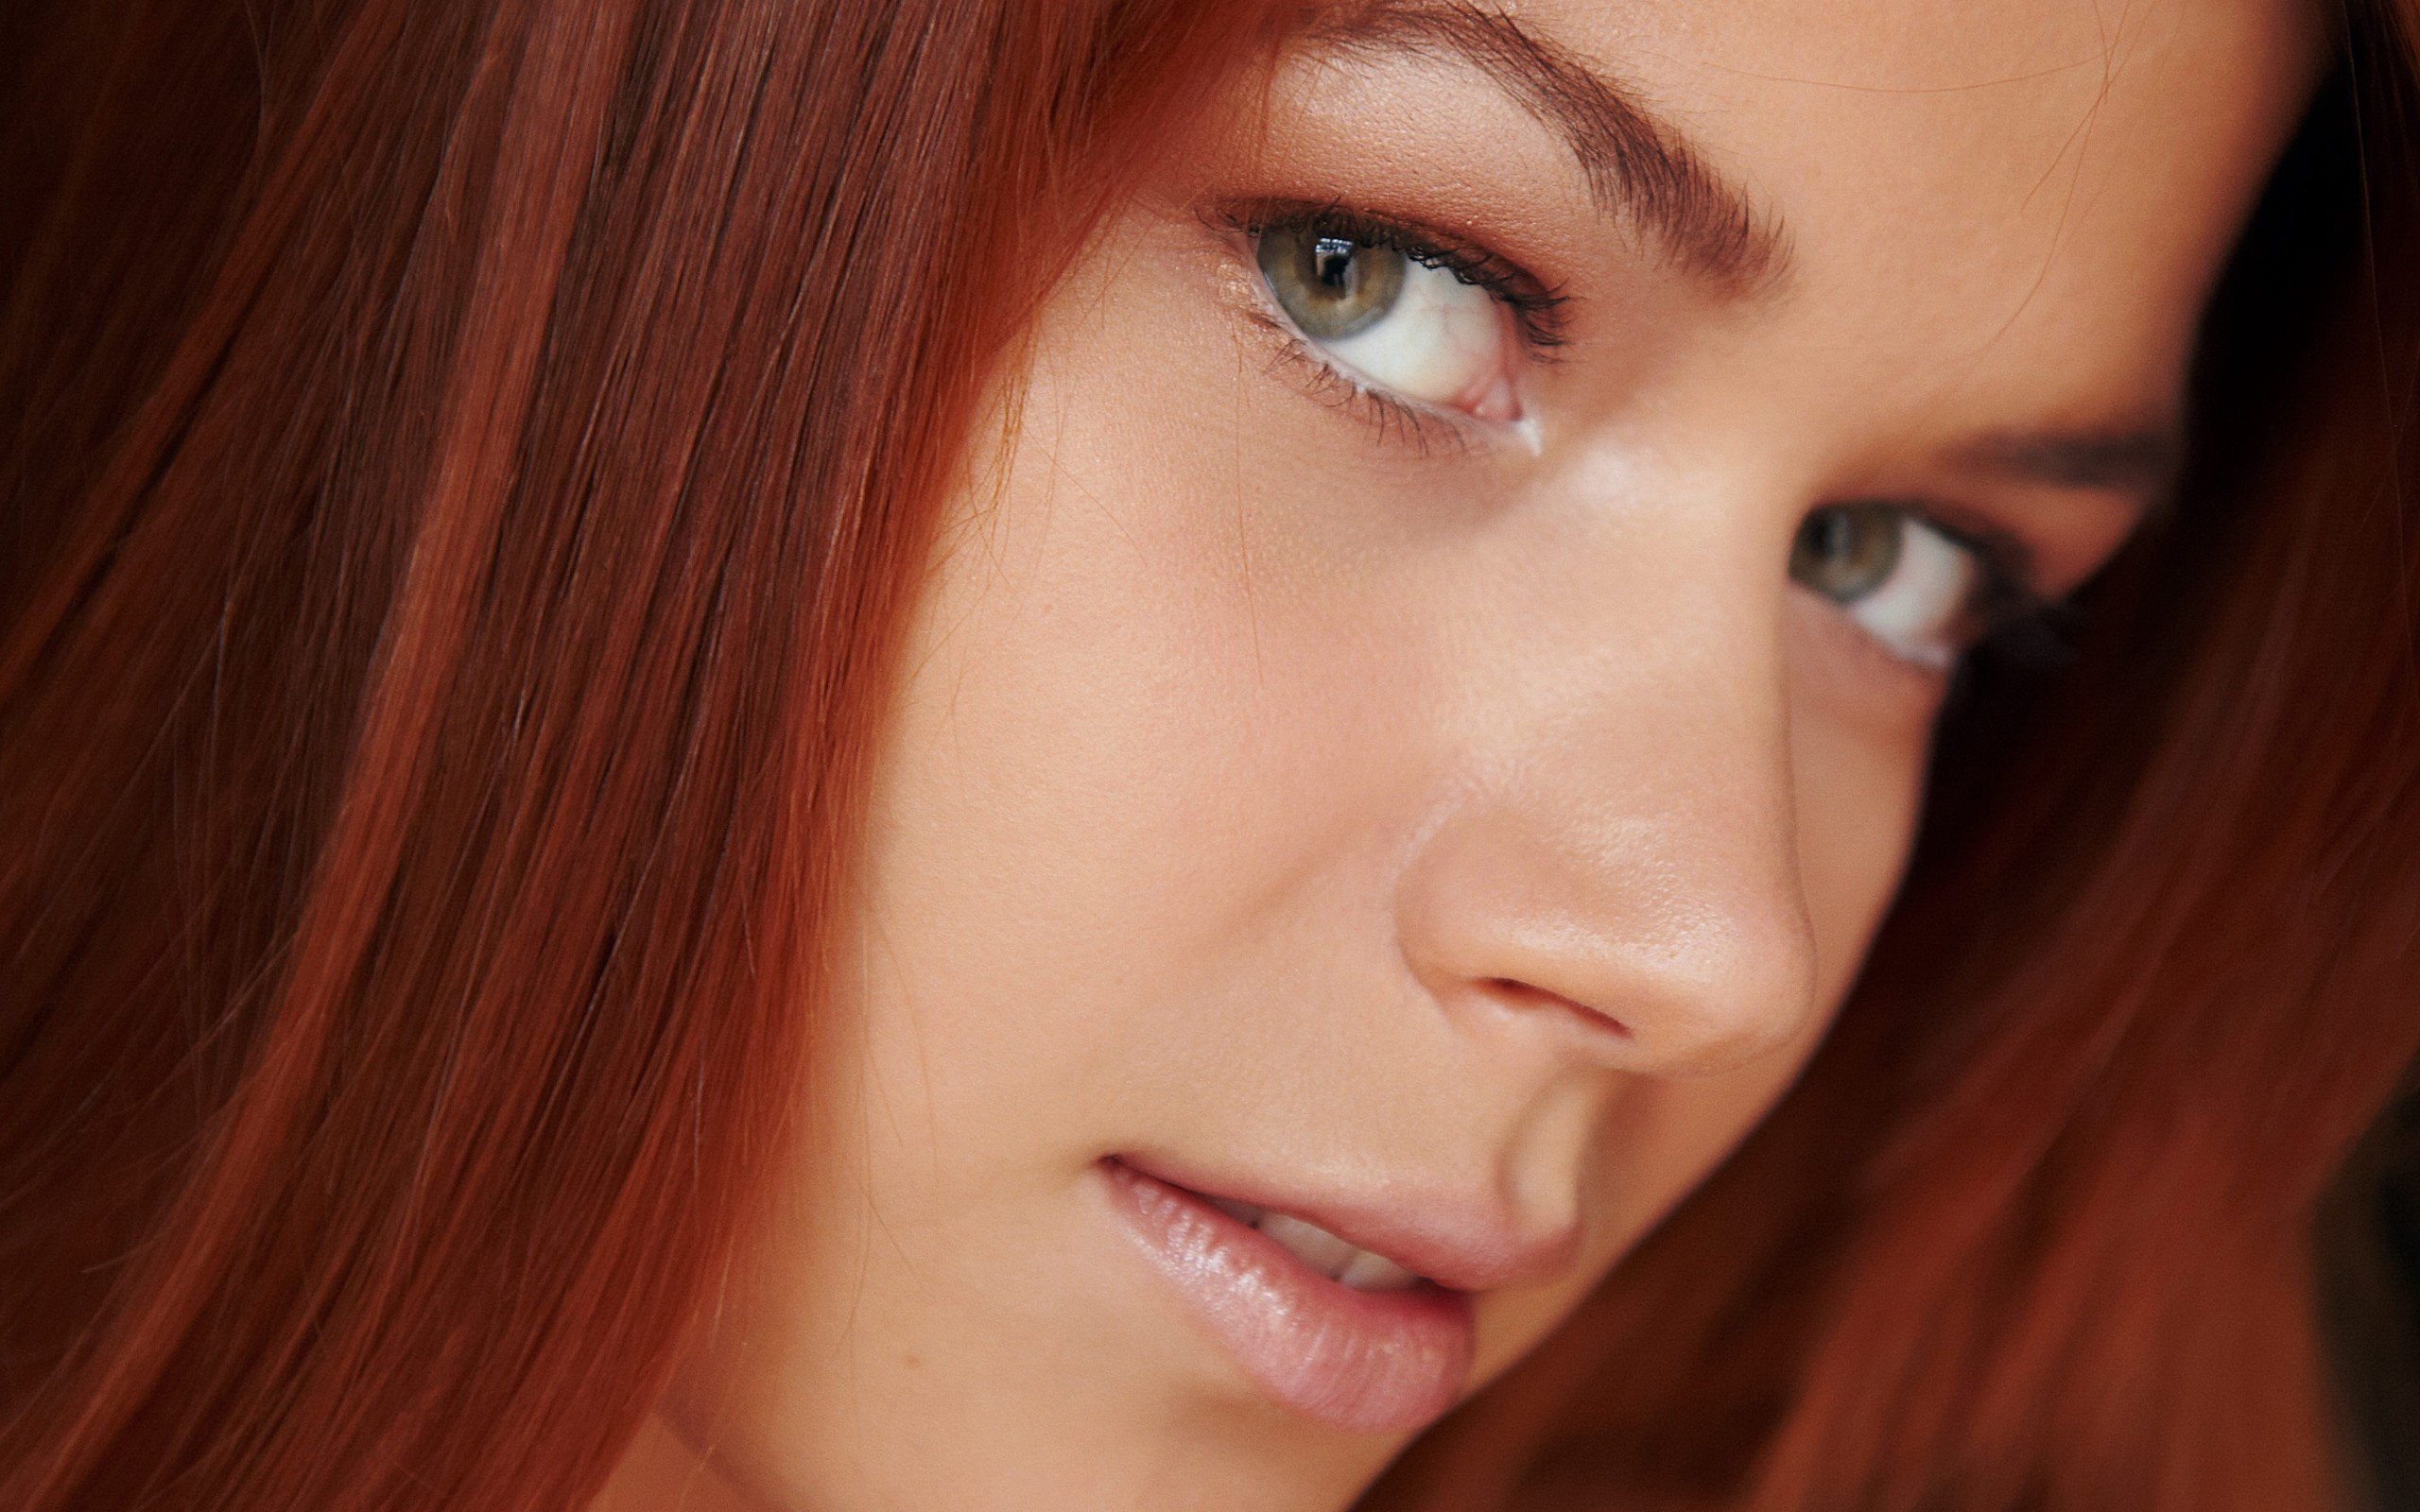 woman close-up eyes redheads HD Wallpaper